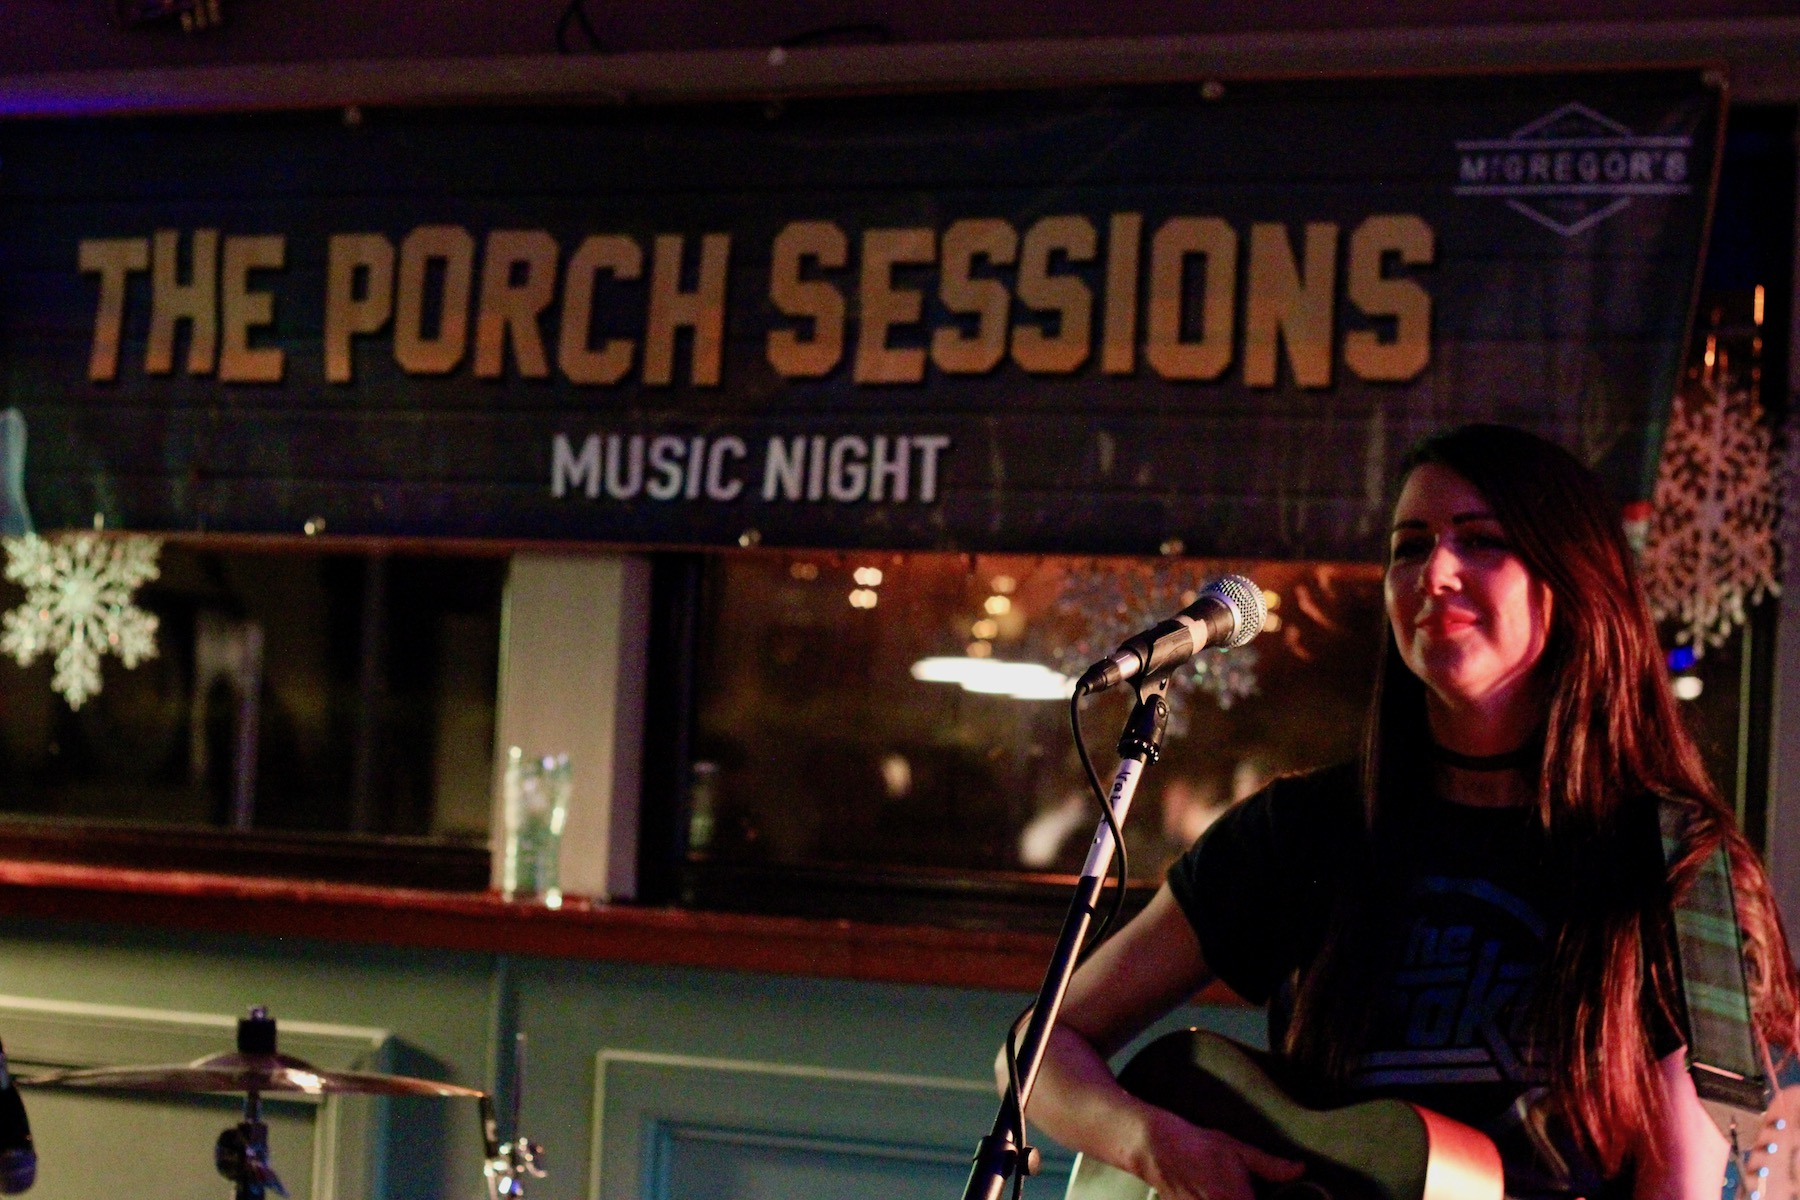 Lauren MacKenzie at The Porch Sessions Inverness December 20183016 - The Porch Sessions, 8/12/2018 - Images